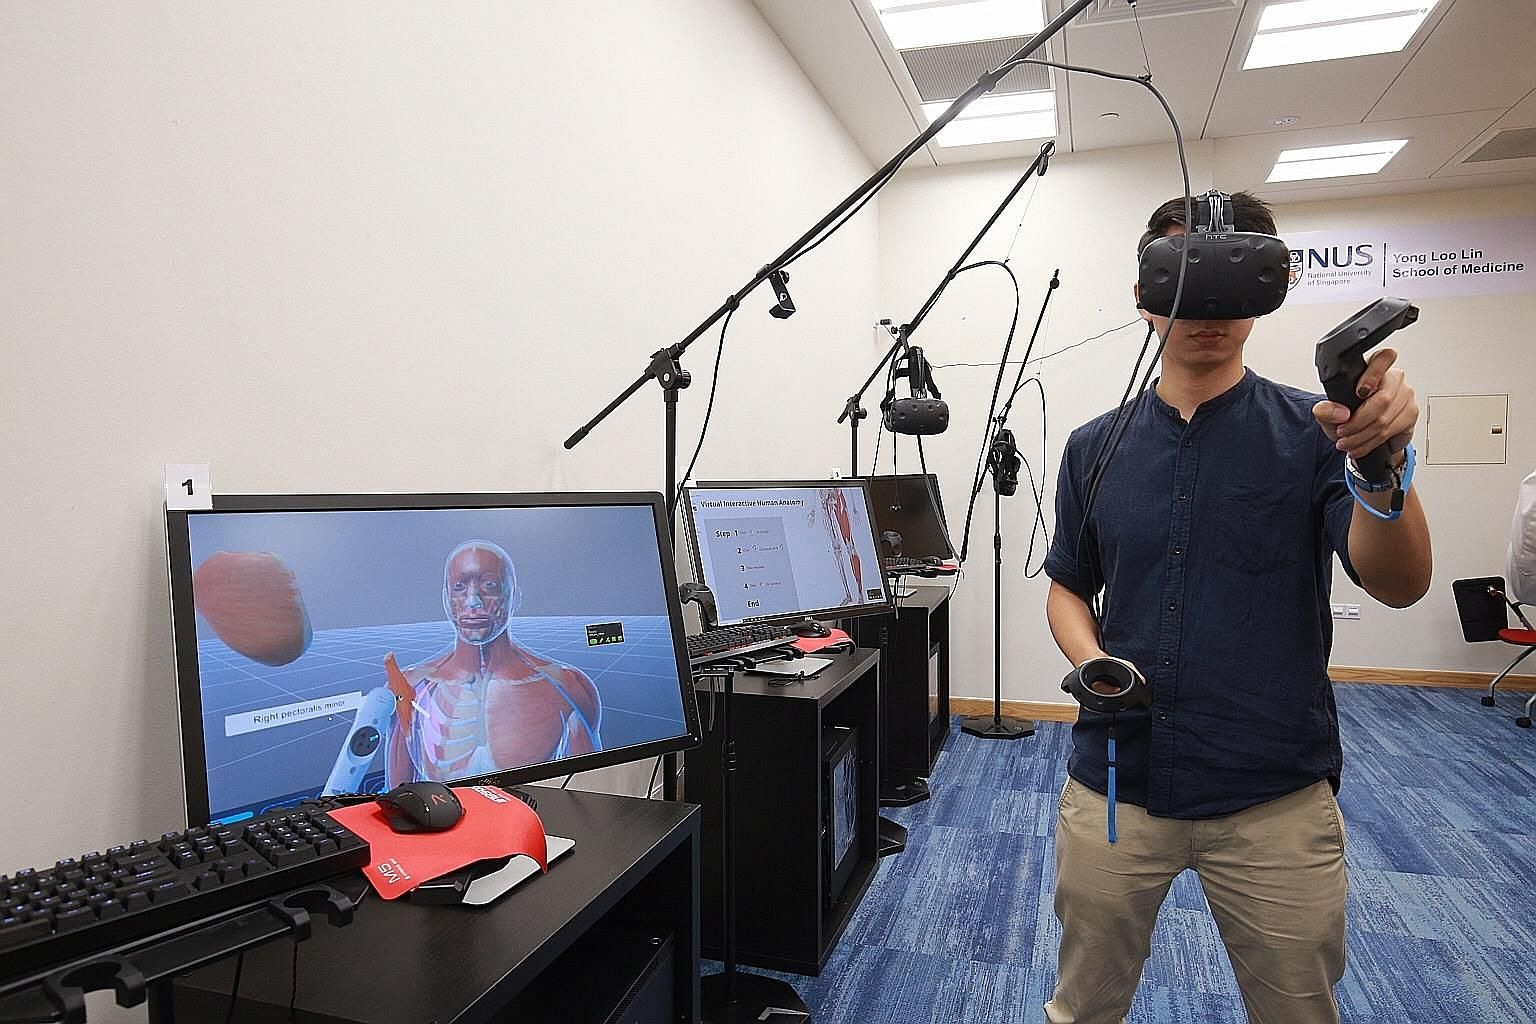 The Virtual Interactive Human Anatomy (VIHA) system allows students wearing a VR headset to delve into the anatomy of a human body by freely manipulating and looking inside different parts and structures, using a controller in their hands.